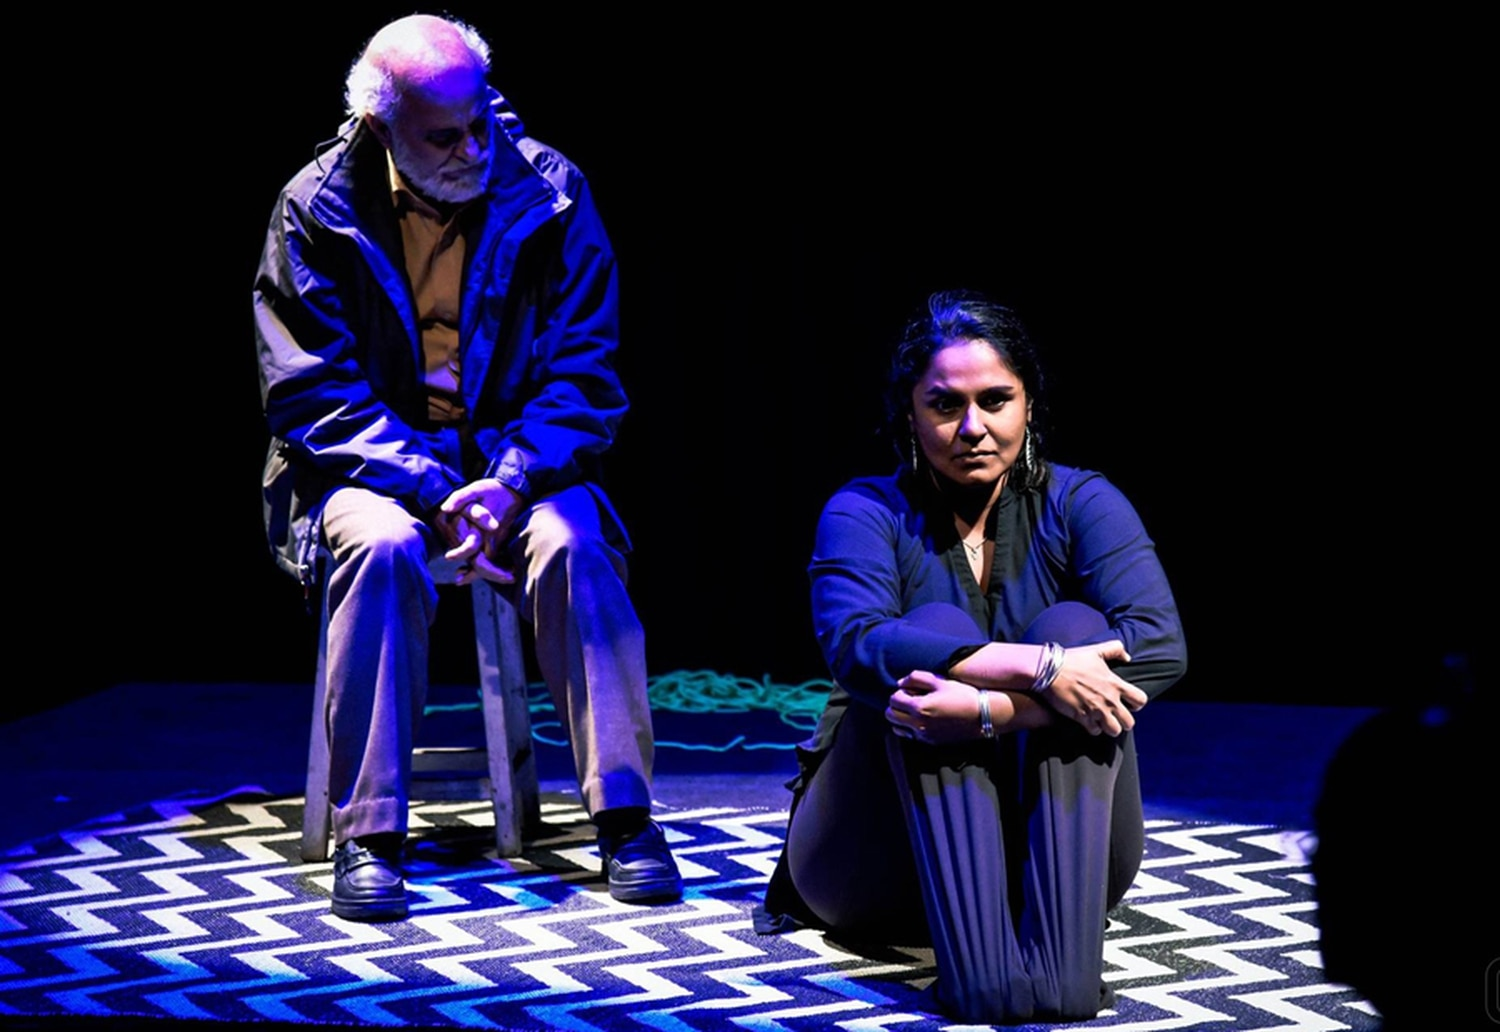 Scenes from Chronicles from Kashmir, a 24-hour performance Dinesh and her ensemble put on in Asia in 2013.